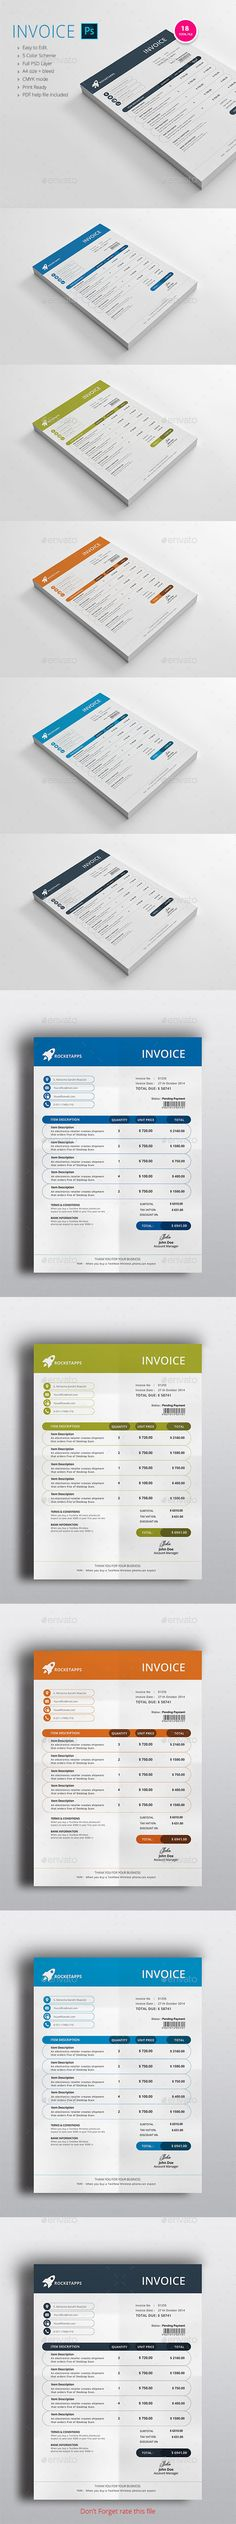 Invoice Design Template, Quotation format and Graphic resume - use of an invoice